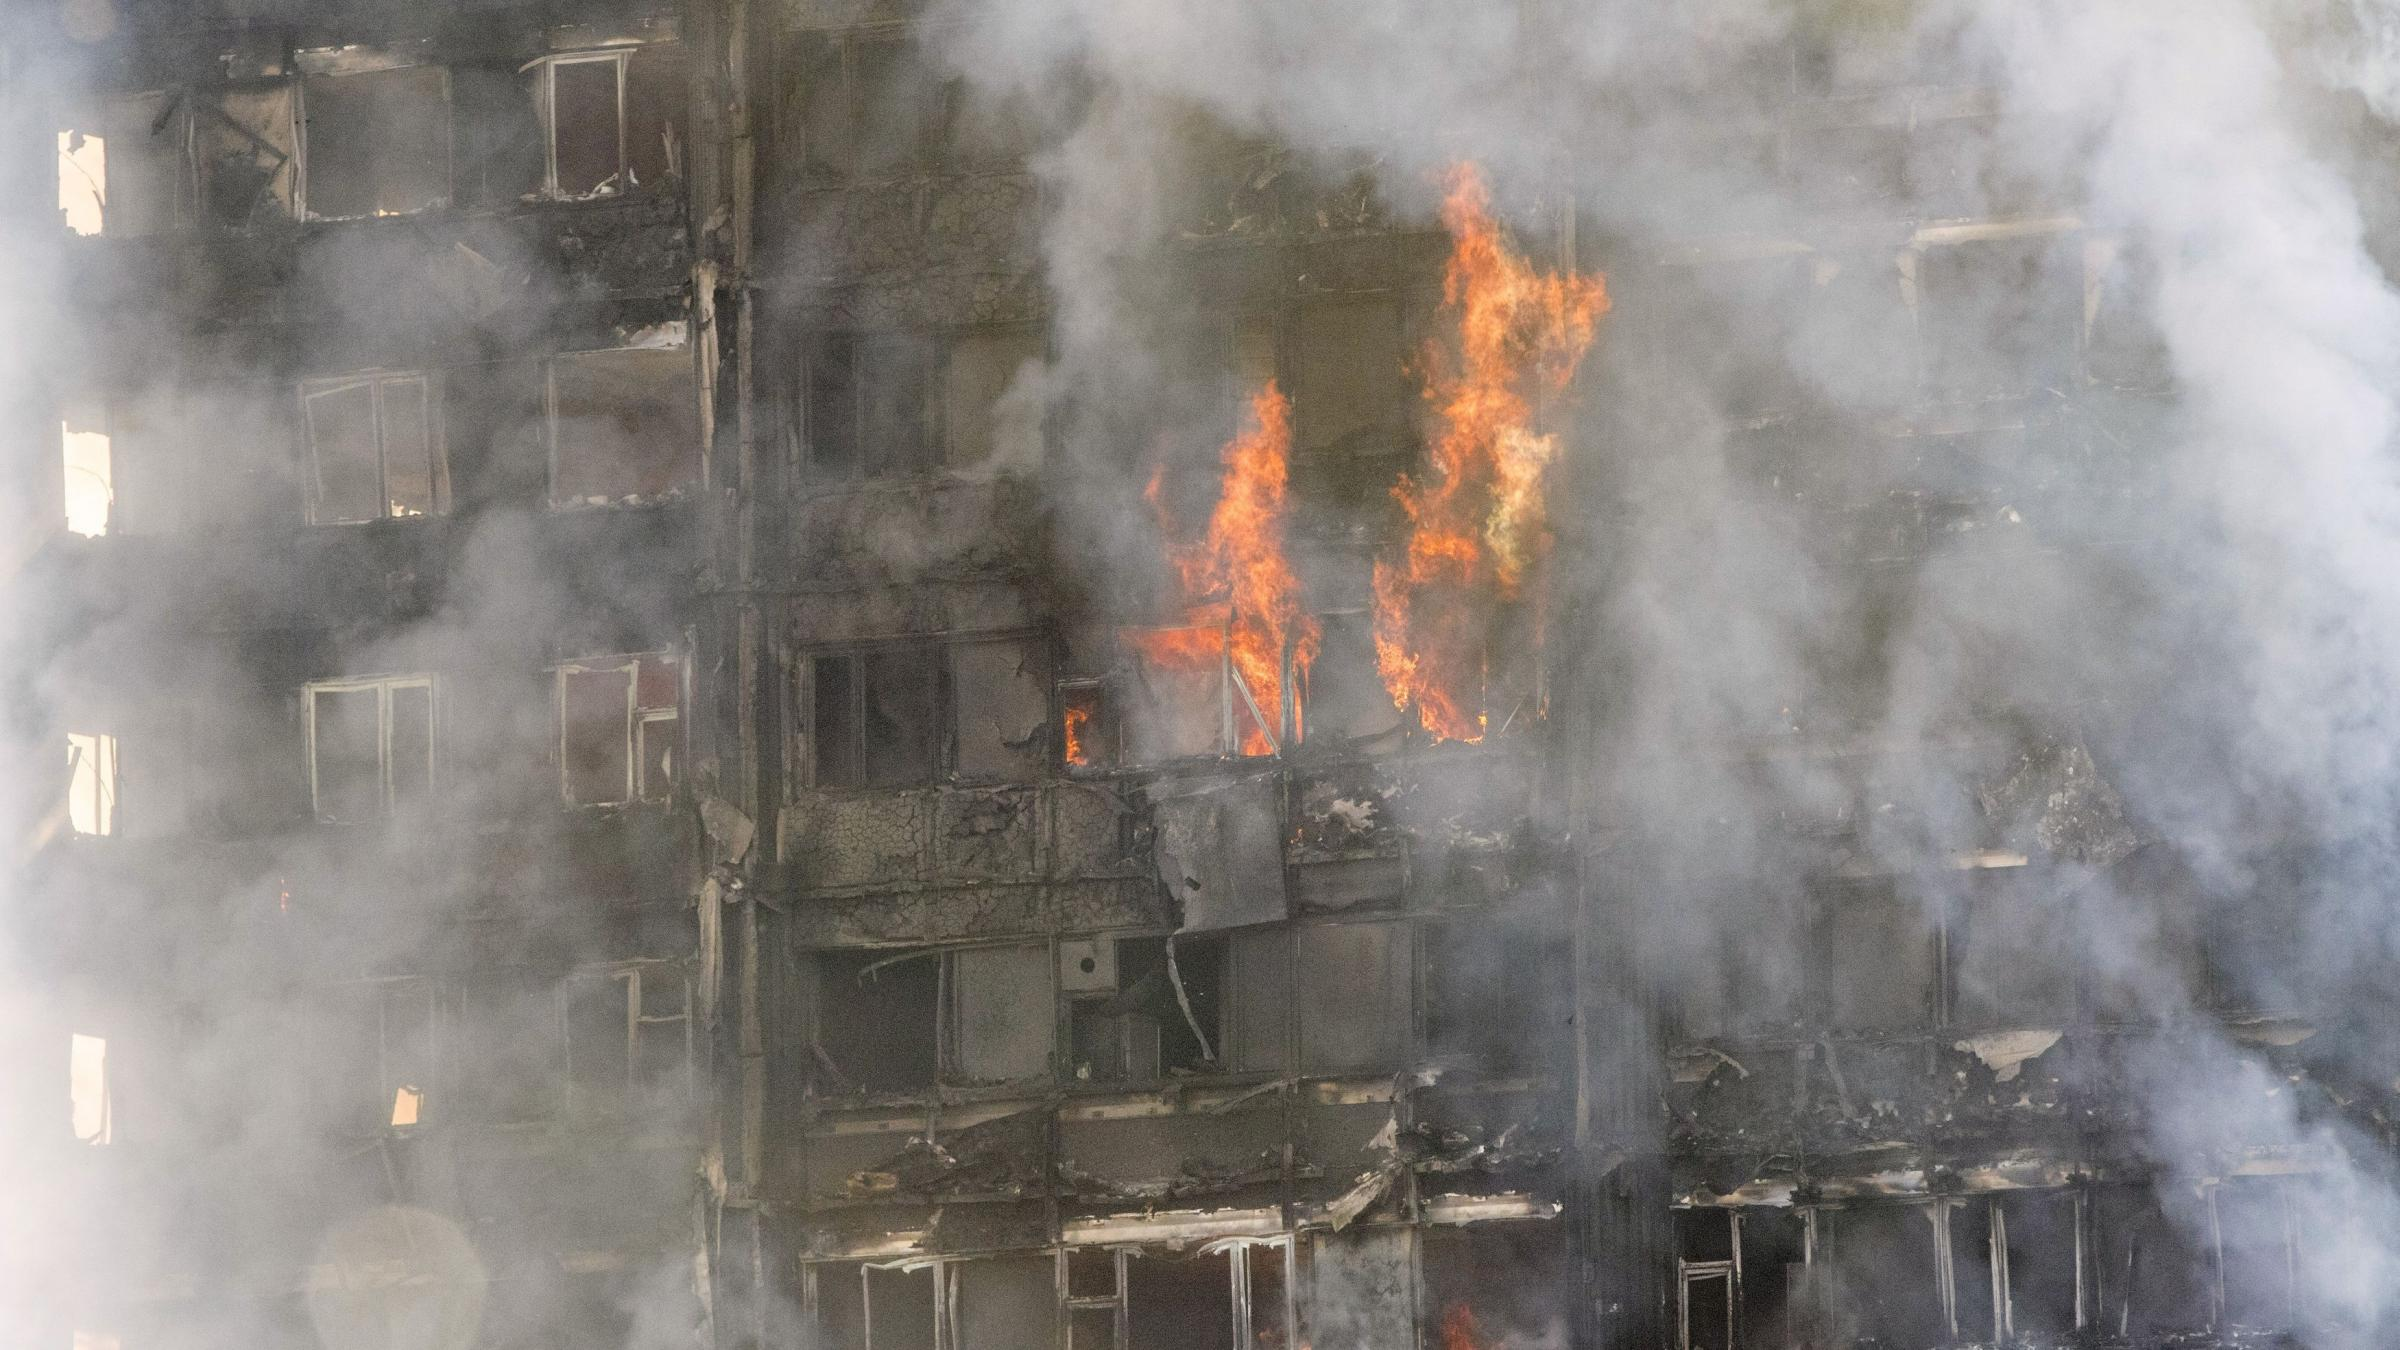 London fire: Six dead and death toll expected to rise